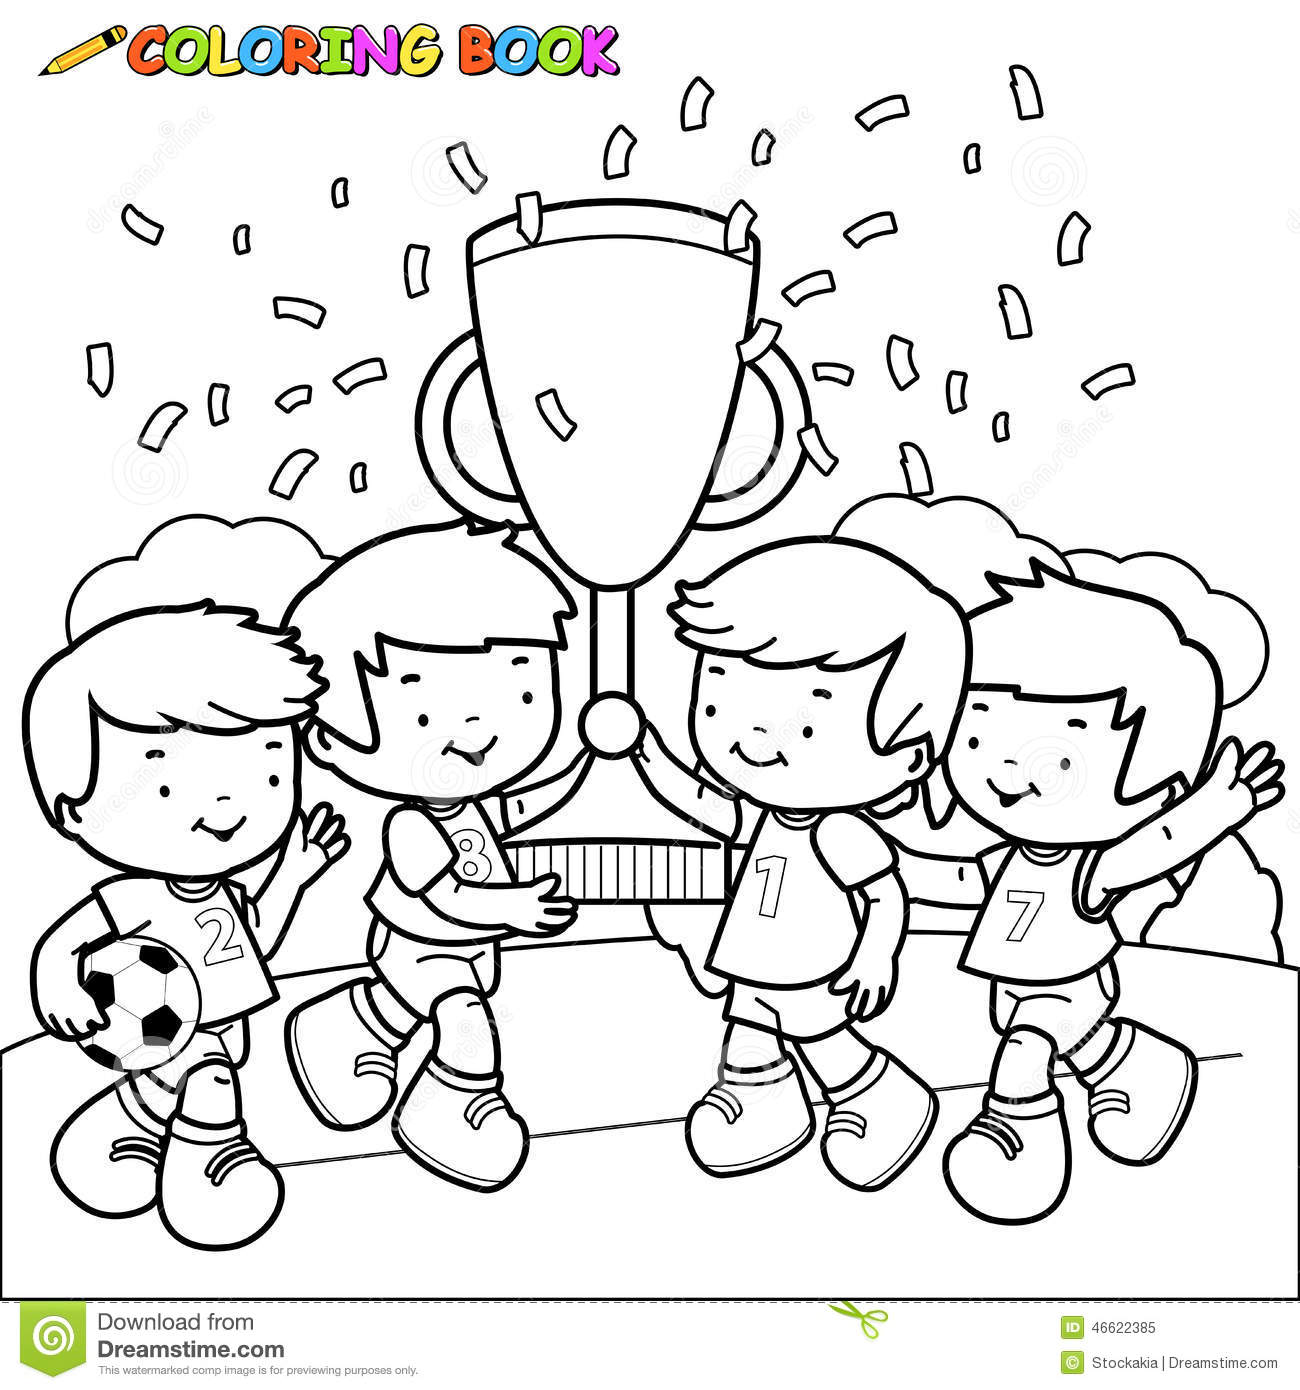 coloring book soccer kids champions stock vector - illustration of